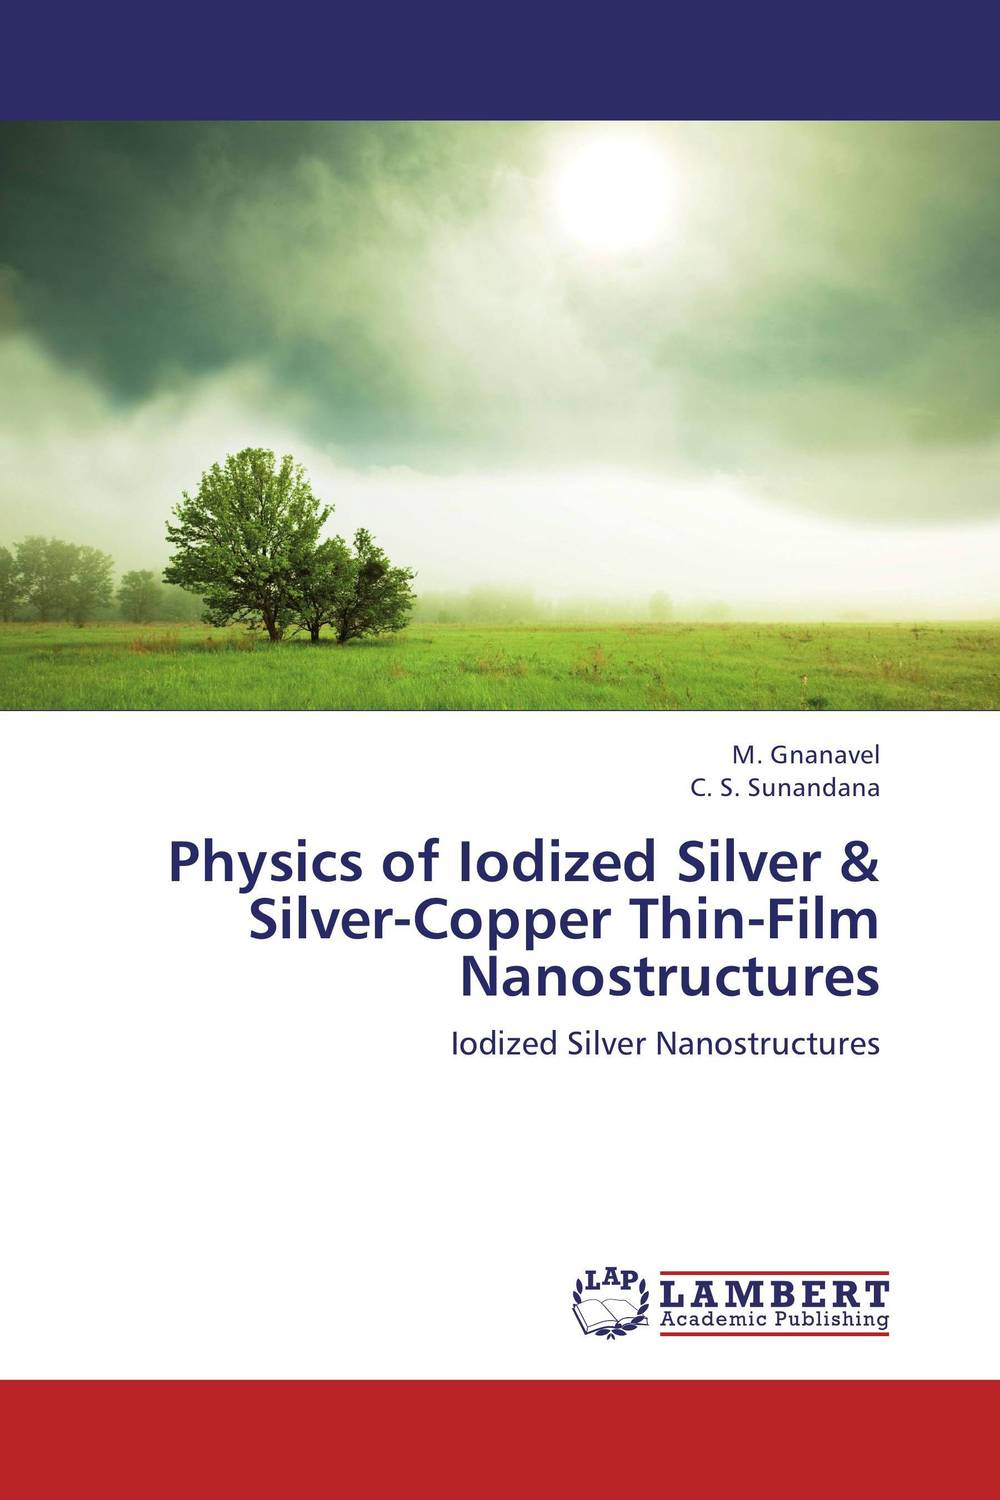 Physics of Iodized Silver & Silver-Copper Thin-Film Nanostructures bulk and thin films cu1 xtlxba2cacu208 y superconductors